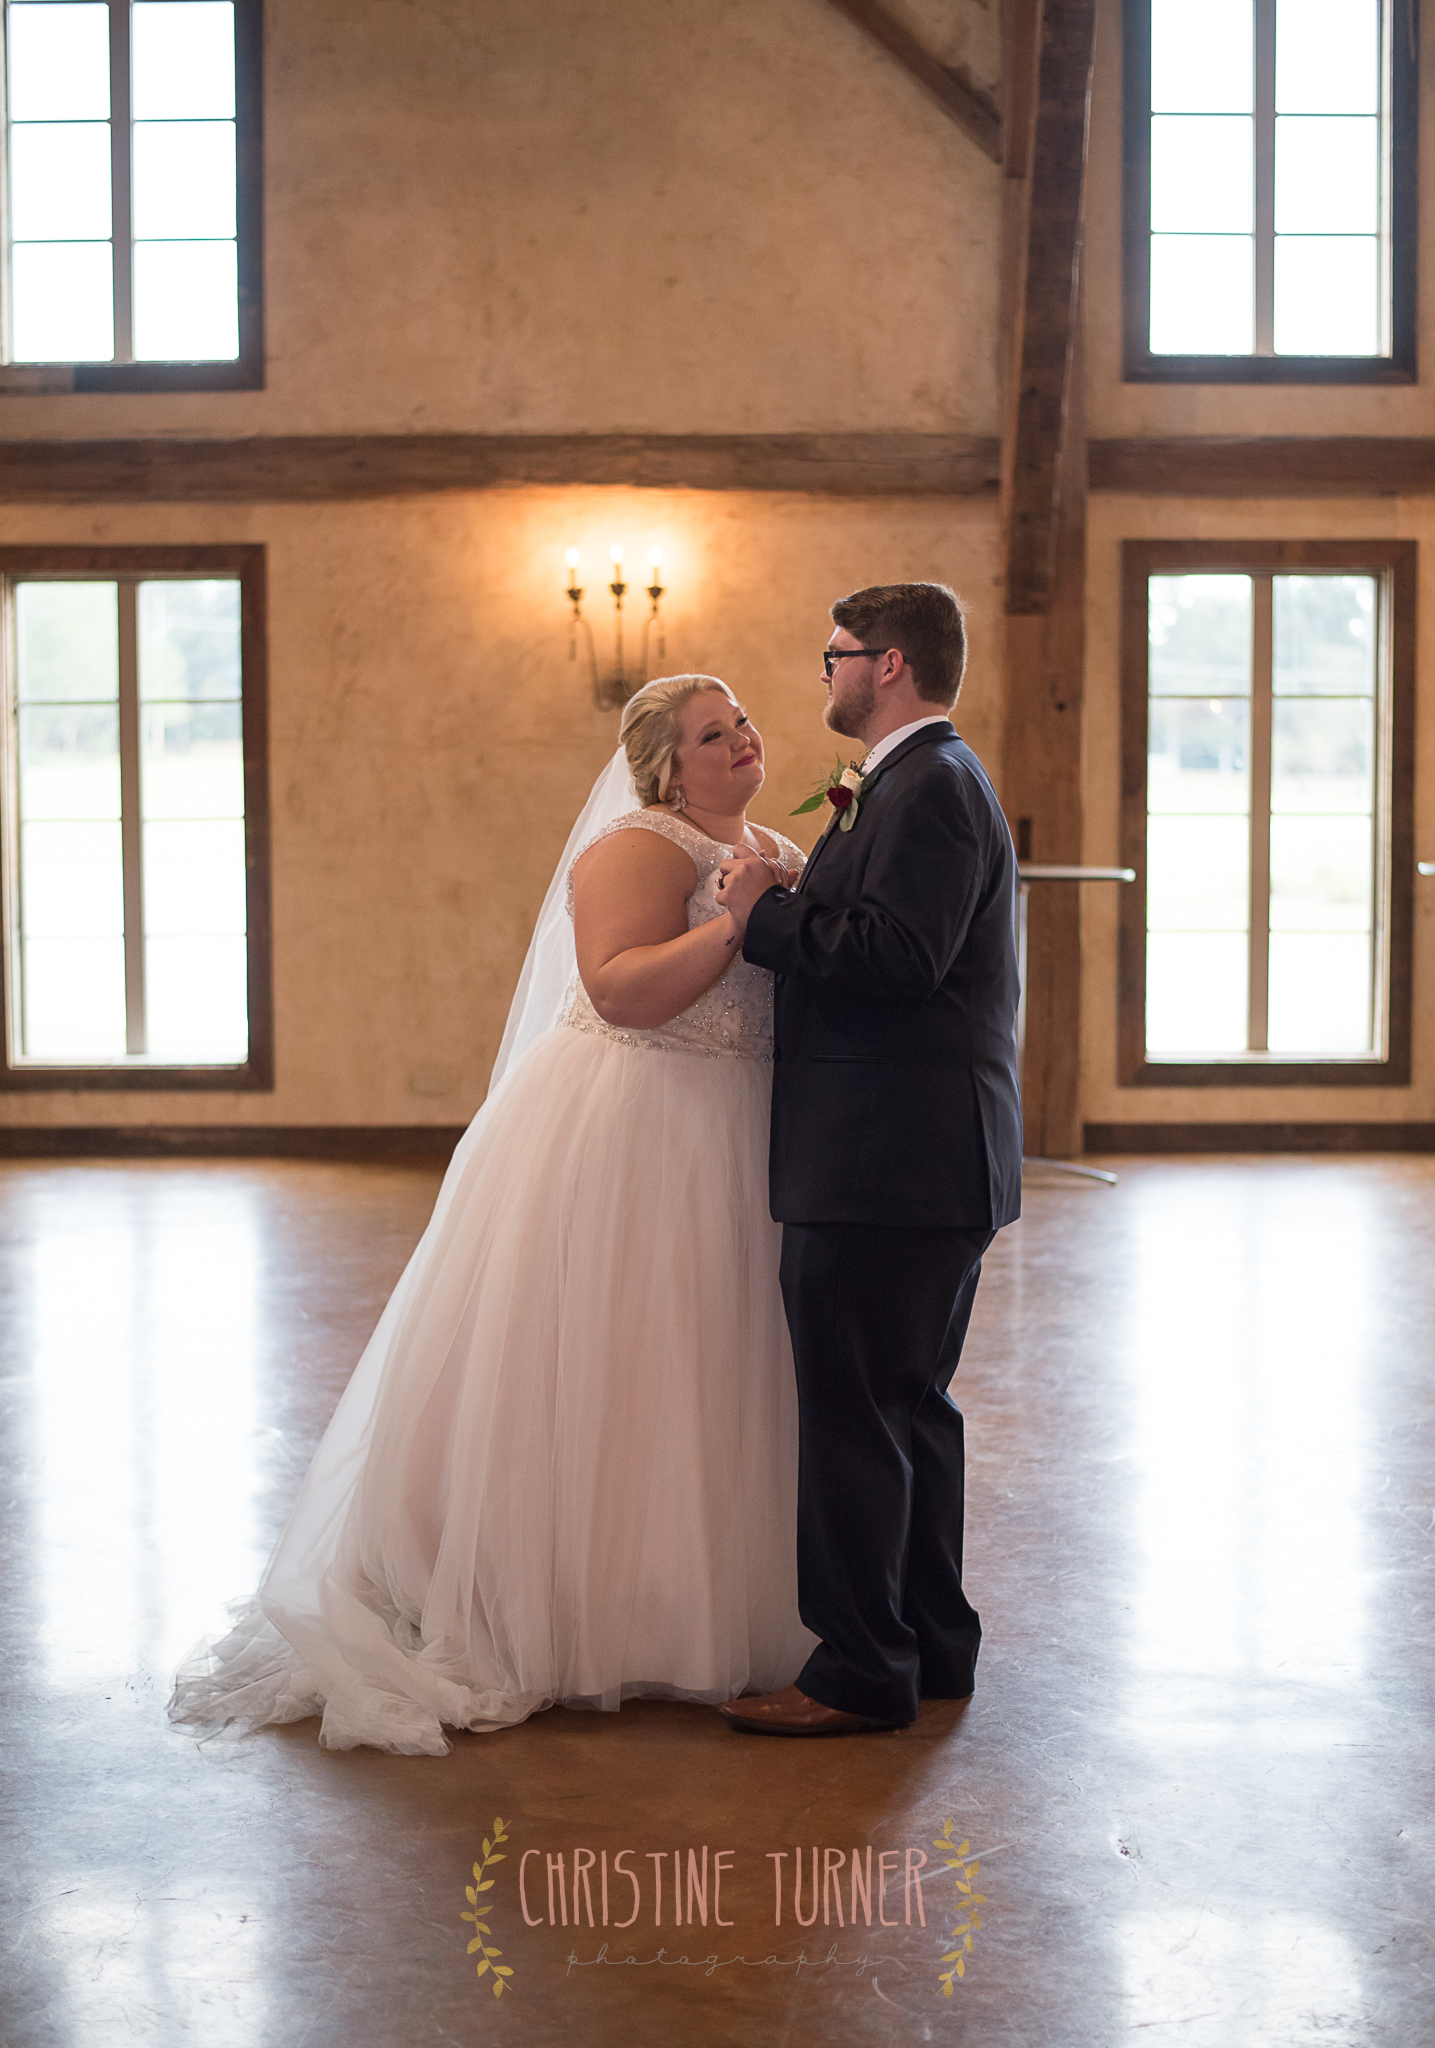 Duell Wedding (39 of 54)